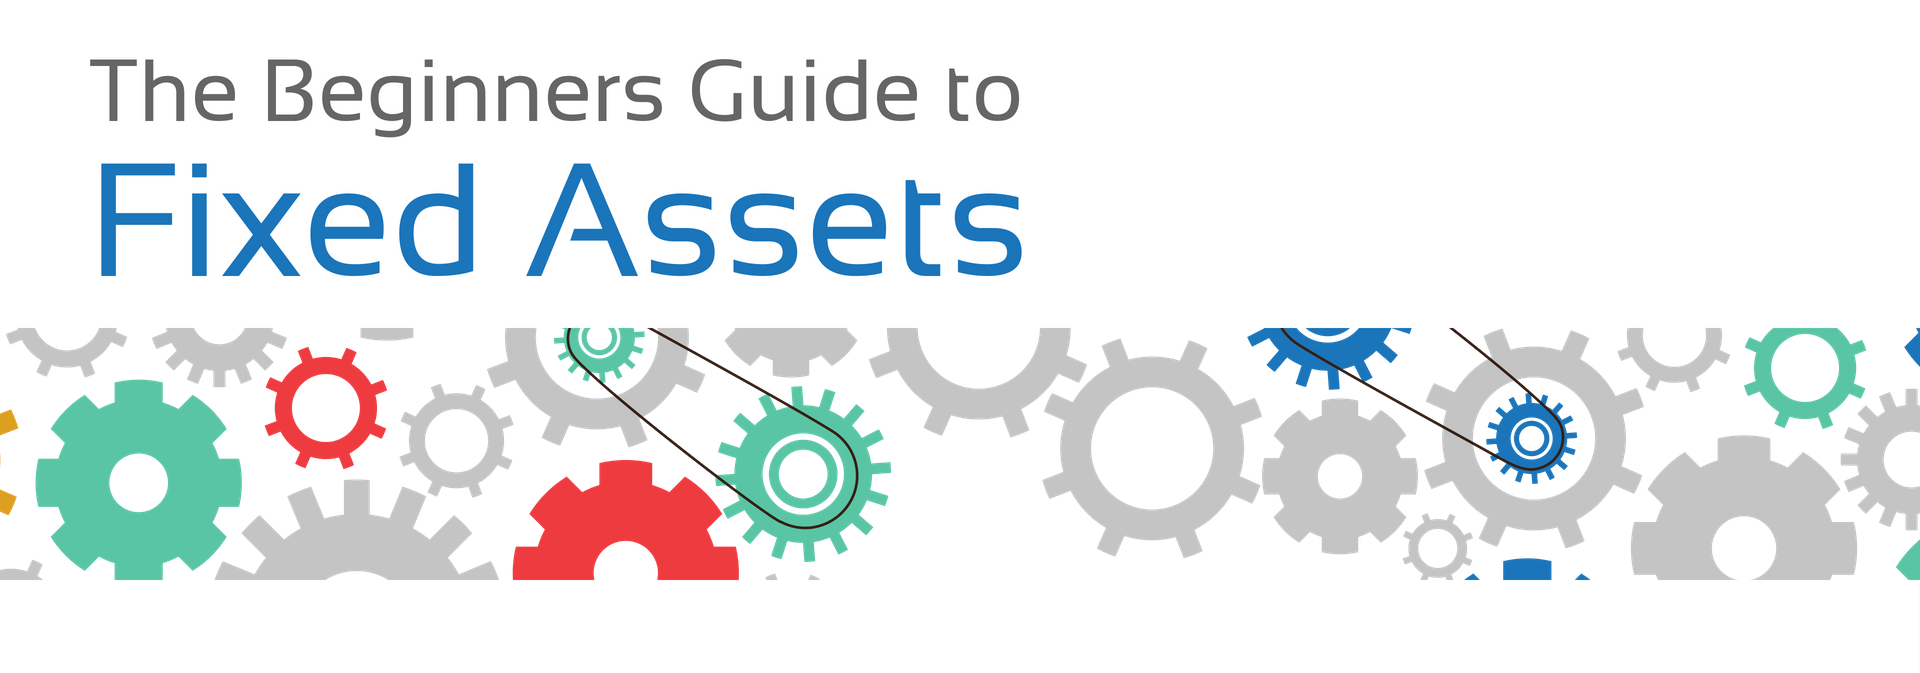 The Beginners Guide to Fixed Asset